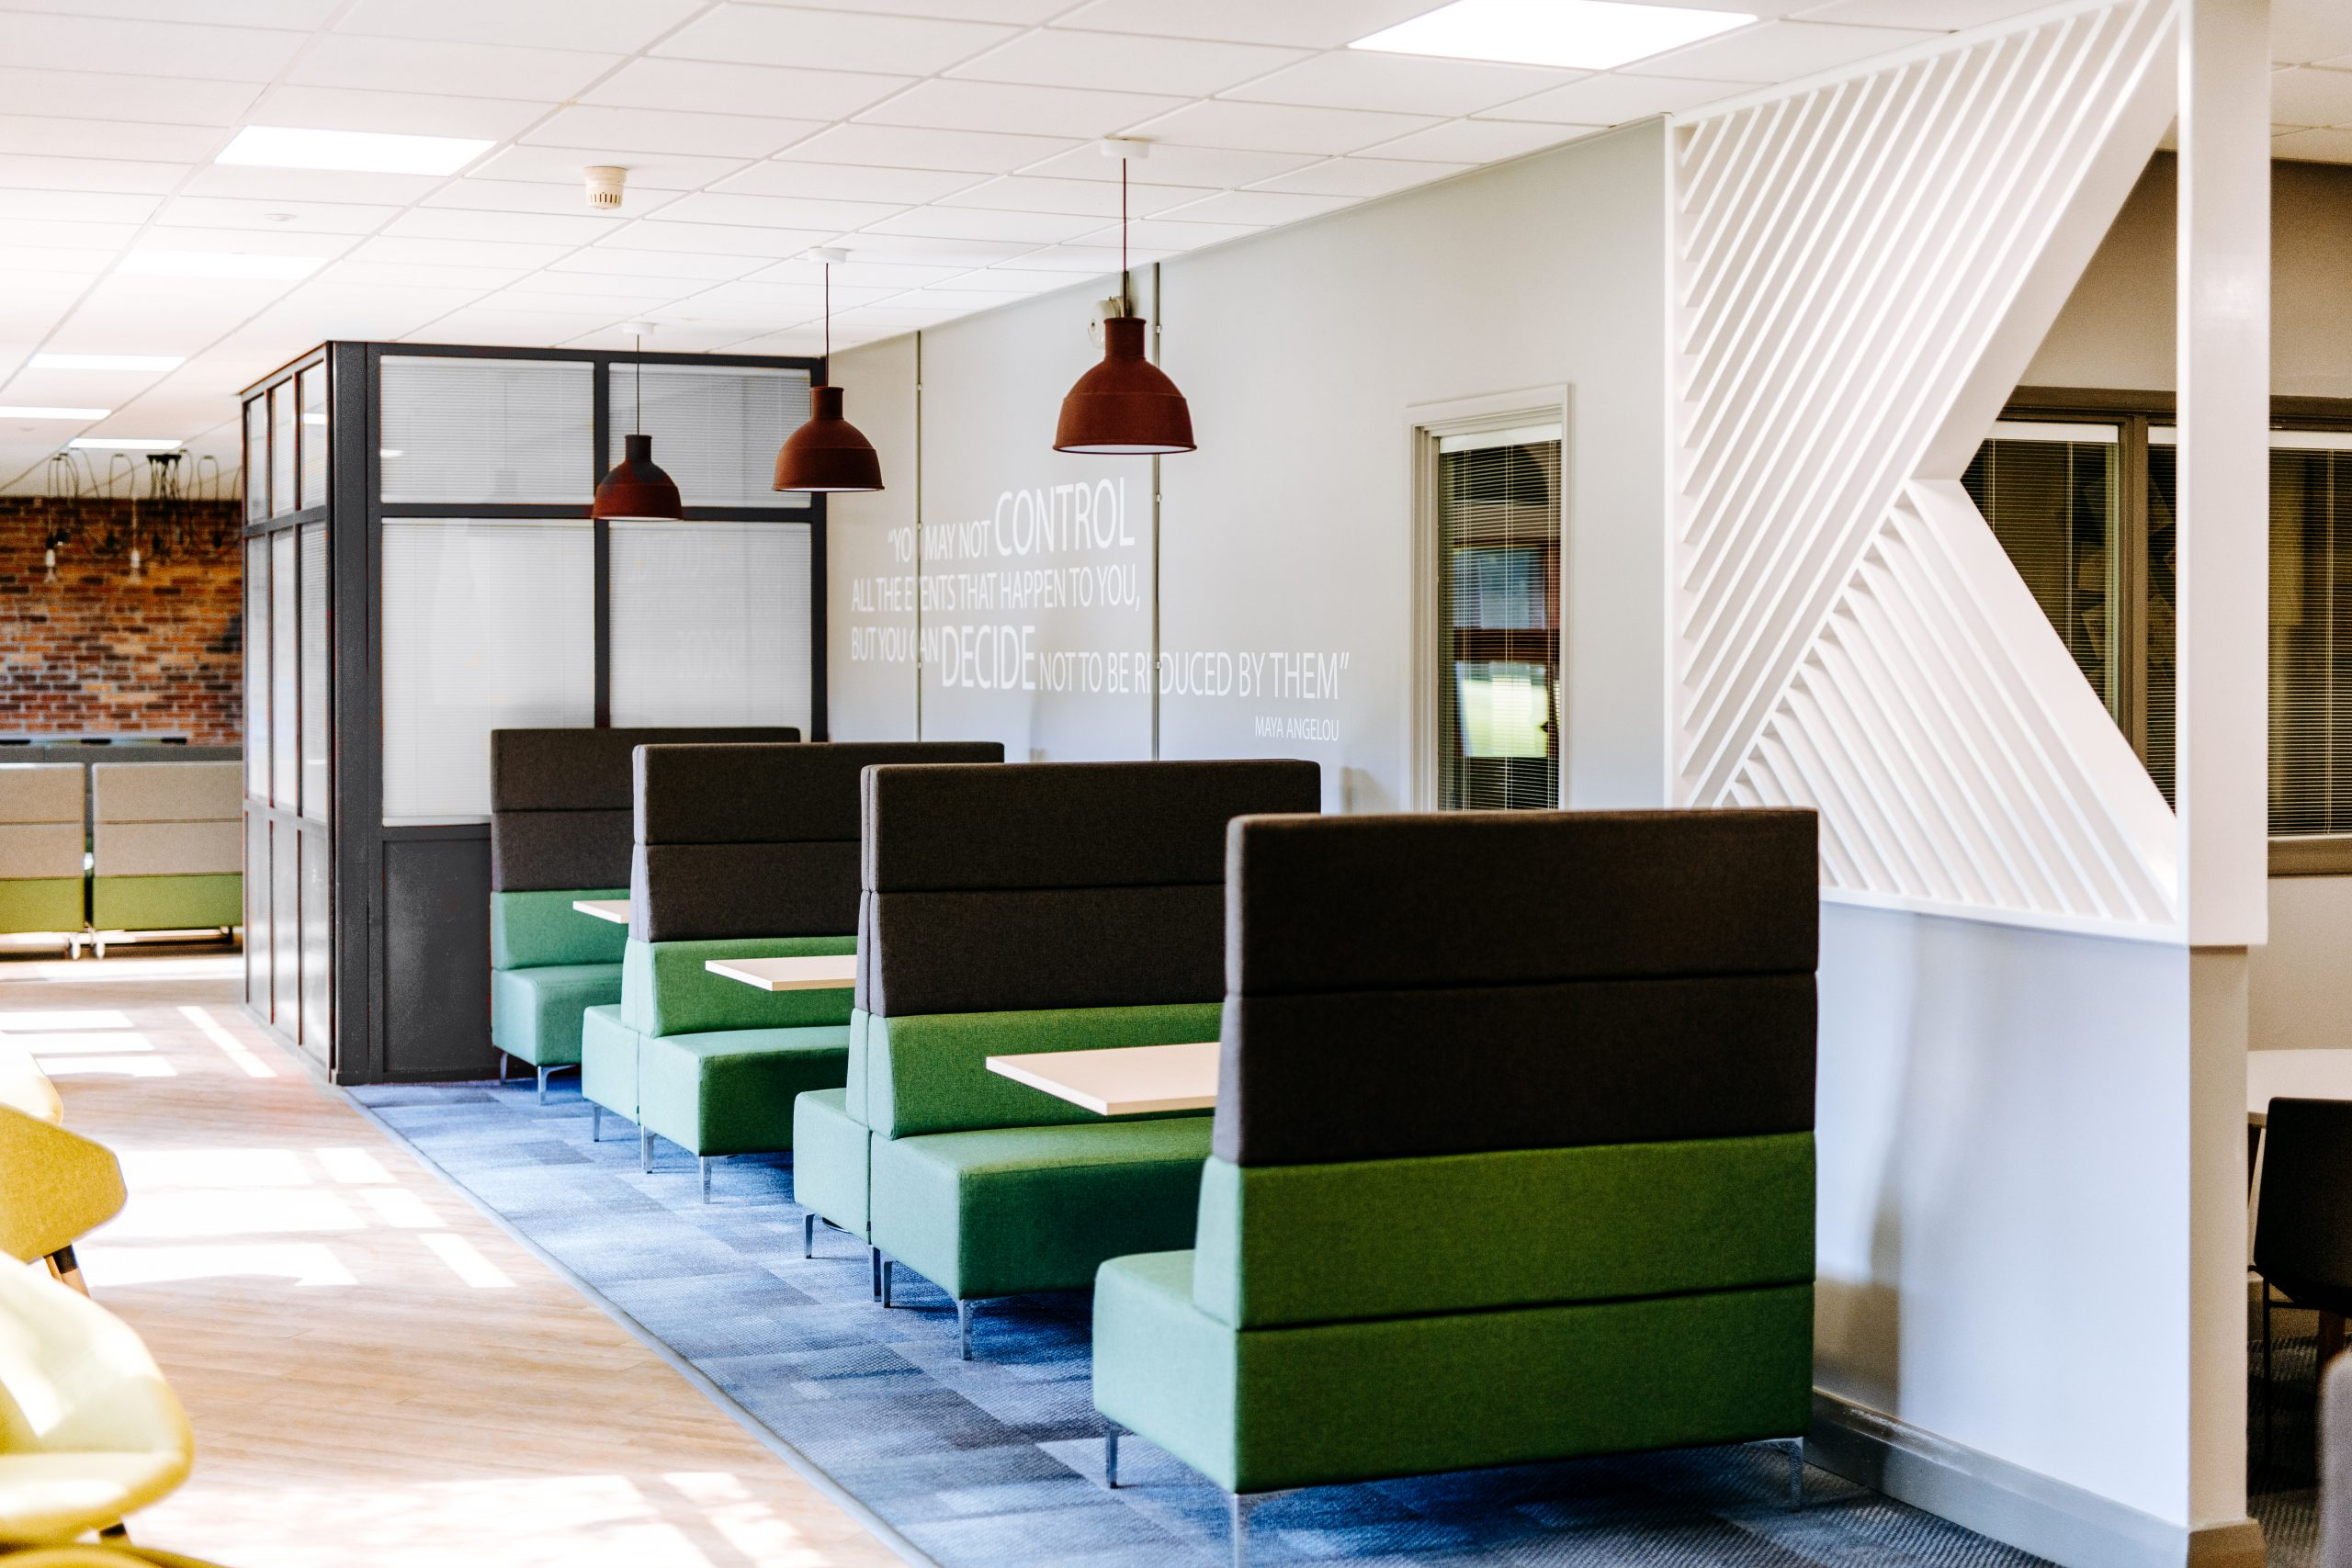 School Is Now In Session Chameleon Goes Back To School With Latest Interior Design Transformation